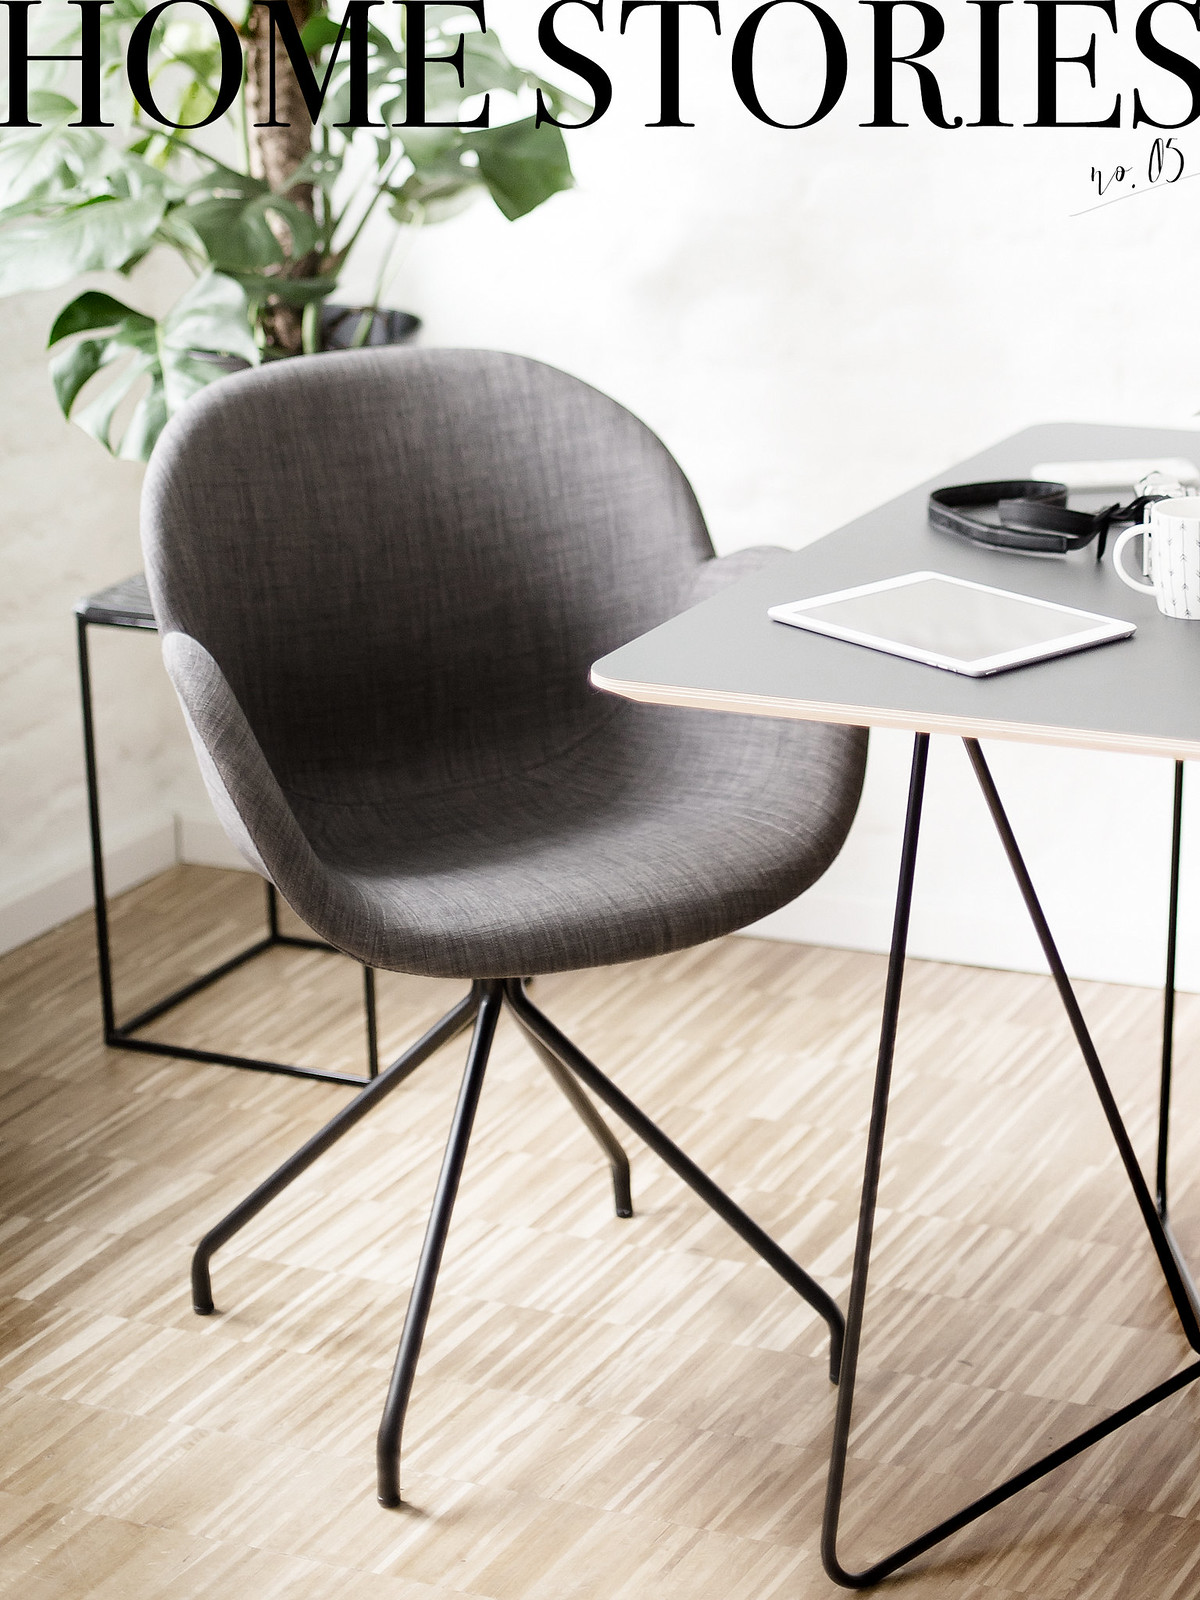 Eames tisch segmented table charles und ray eames vitra for Esstisch replica